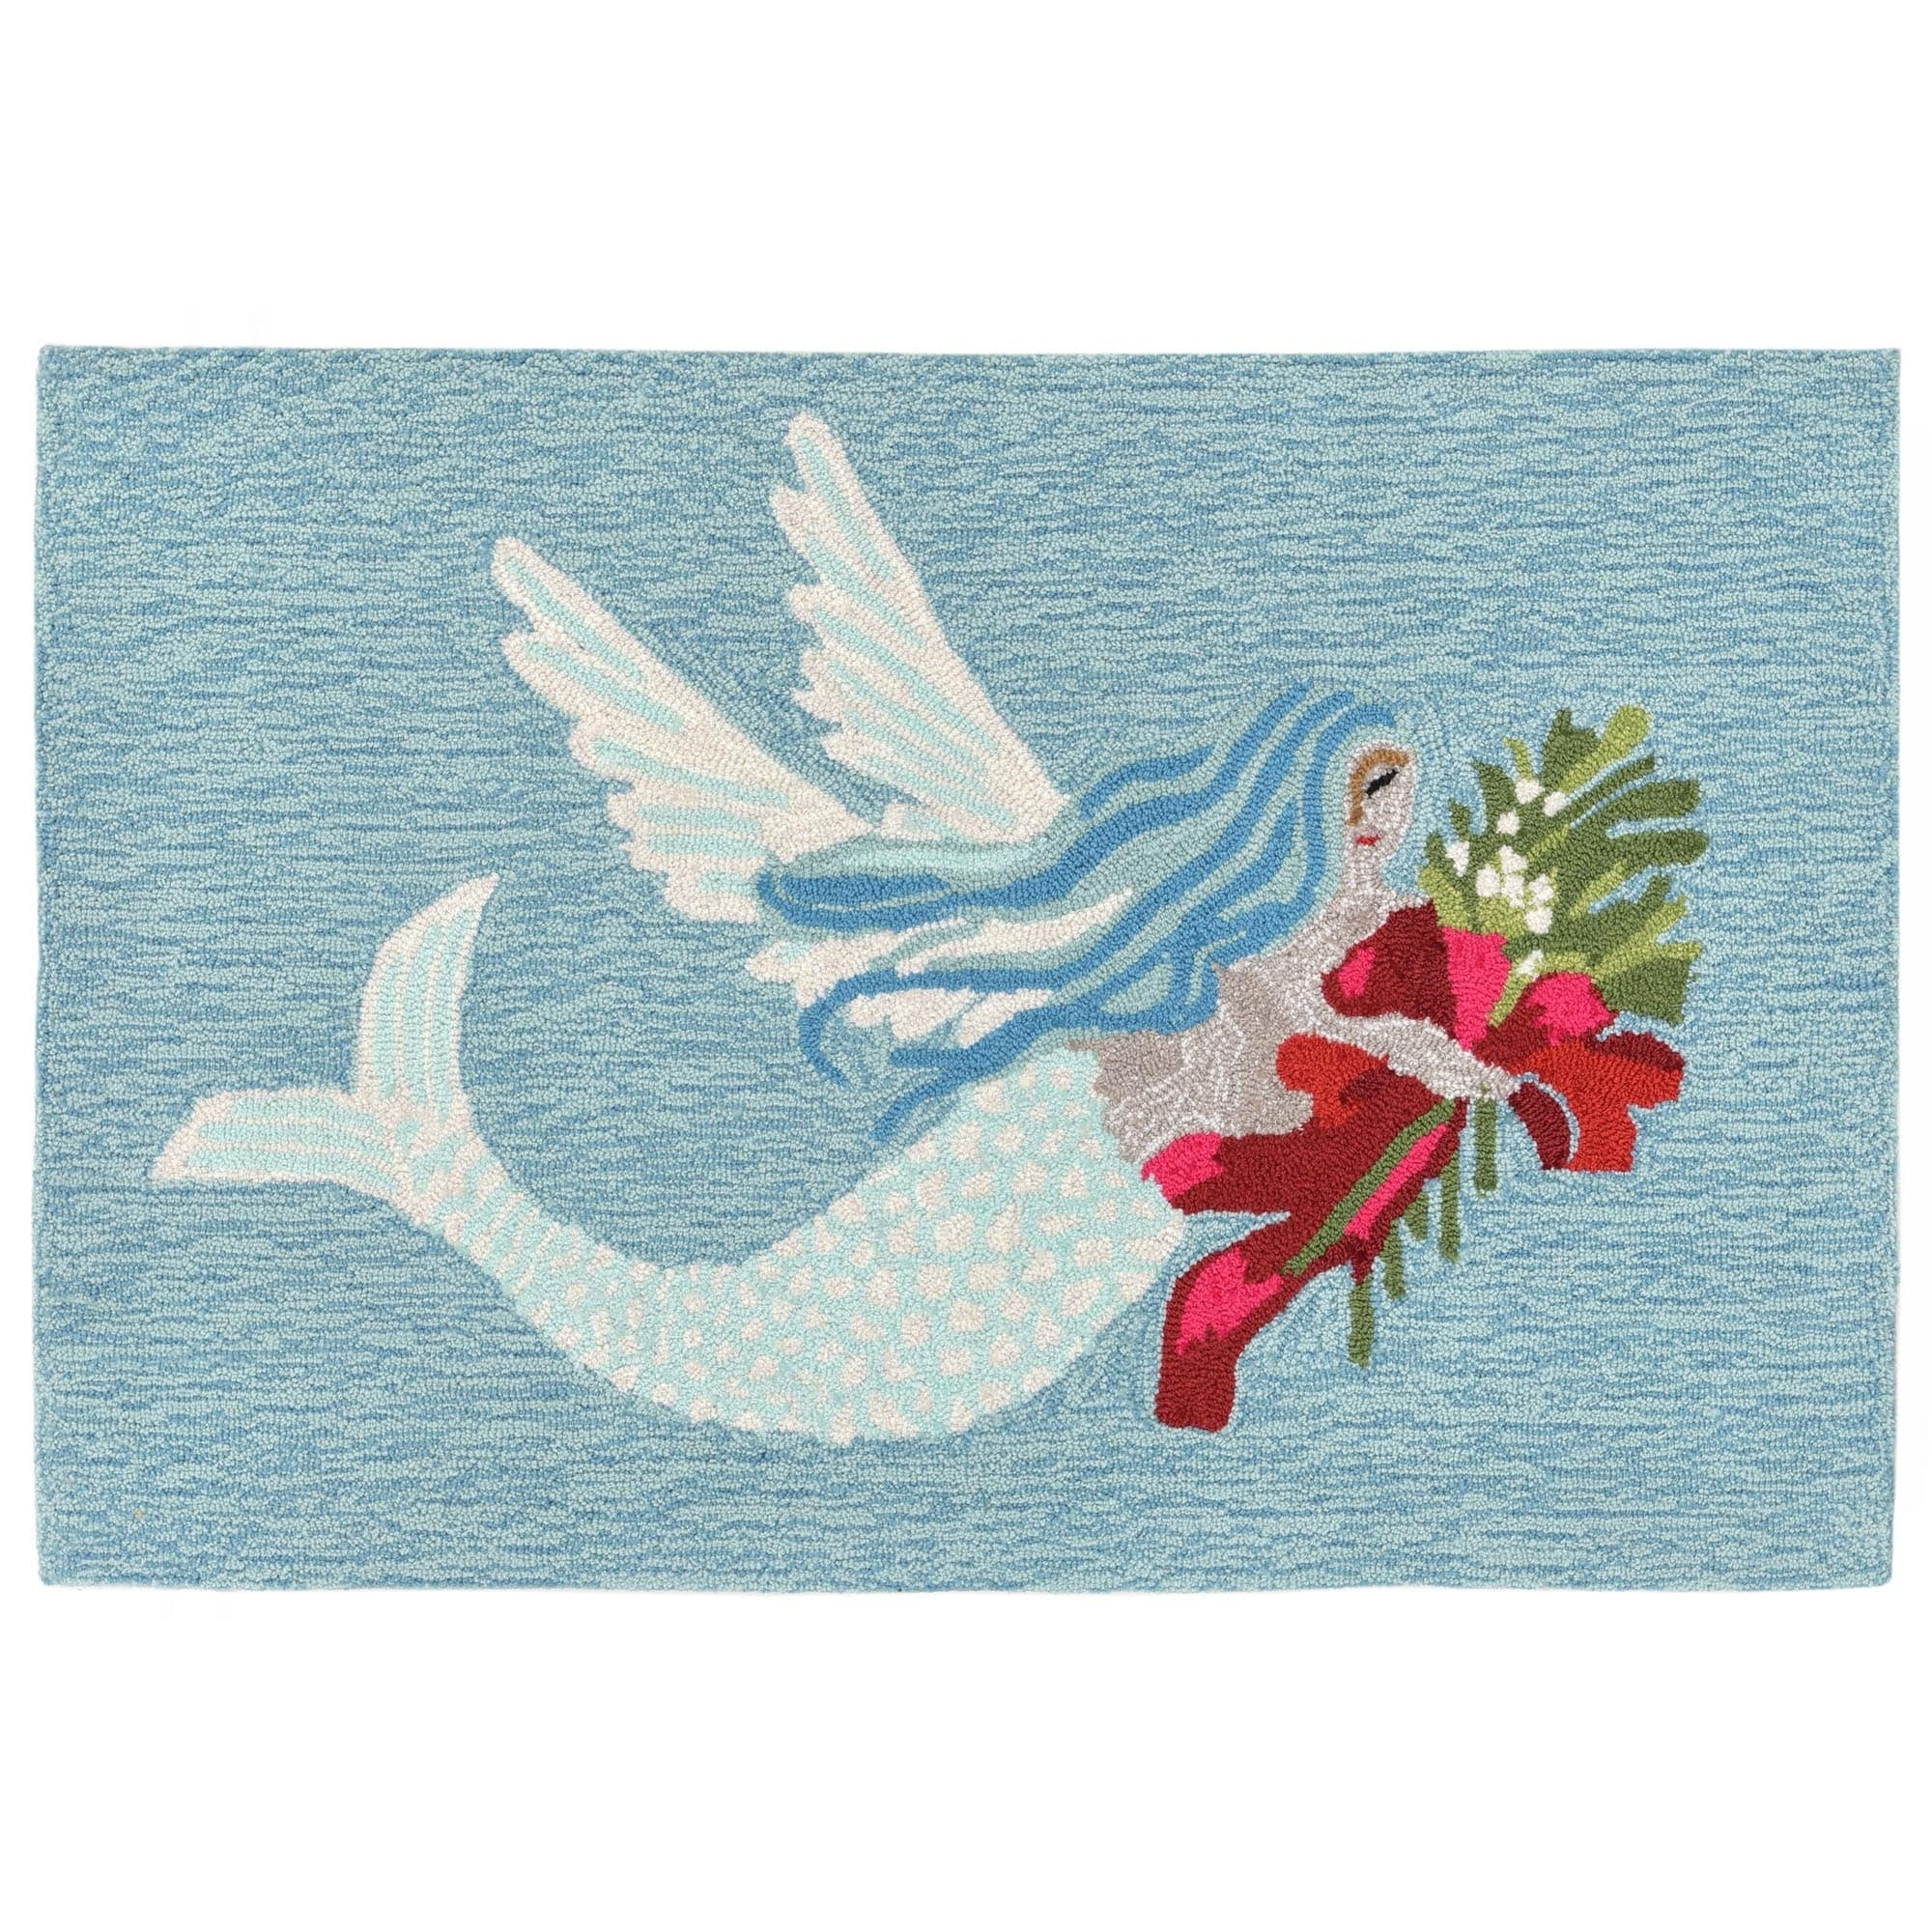 Liora Manne Holiday Mermaid Outdoor Rug 2 X 3 2 X 3